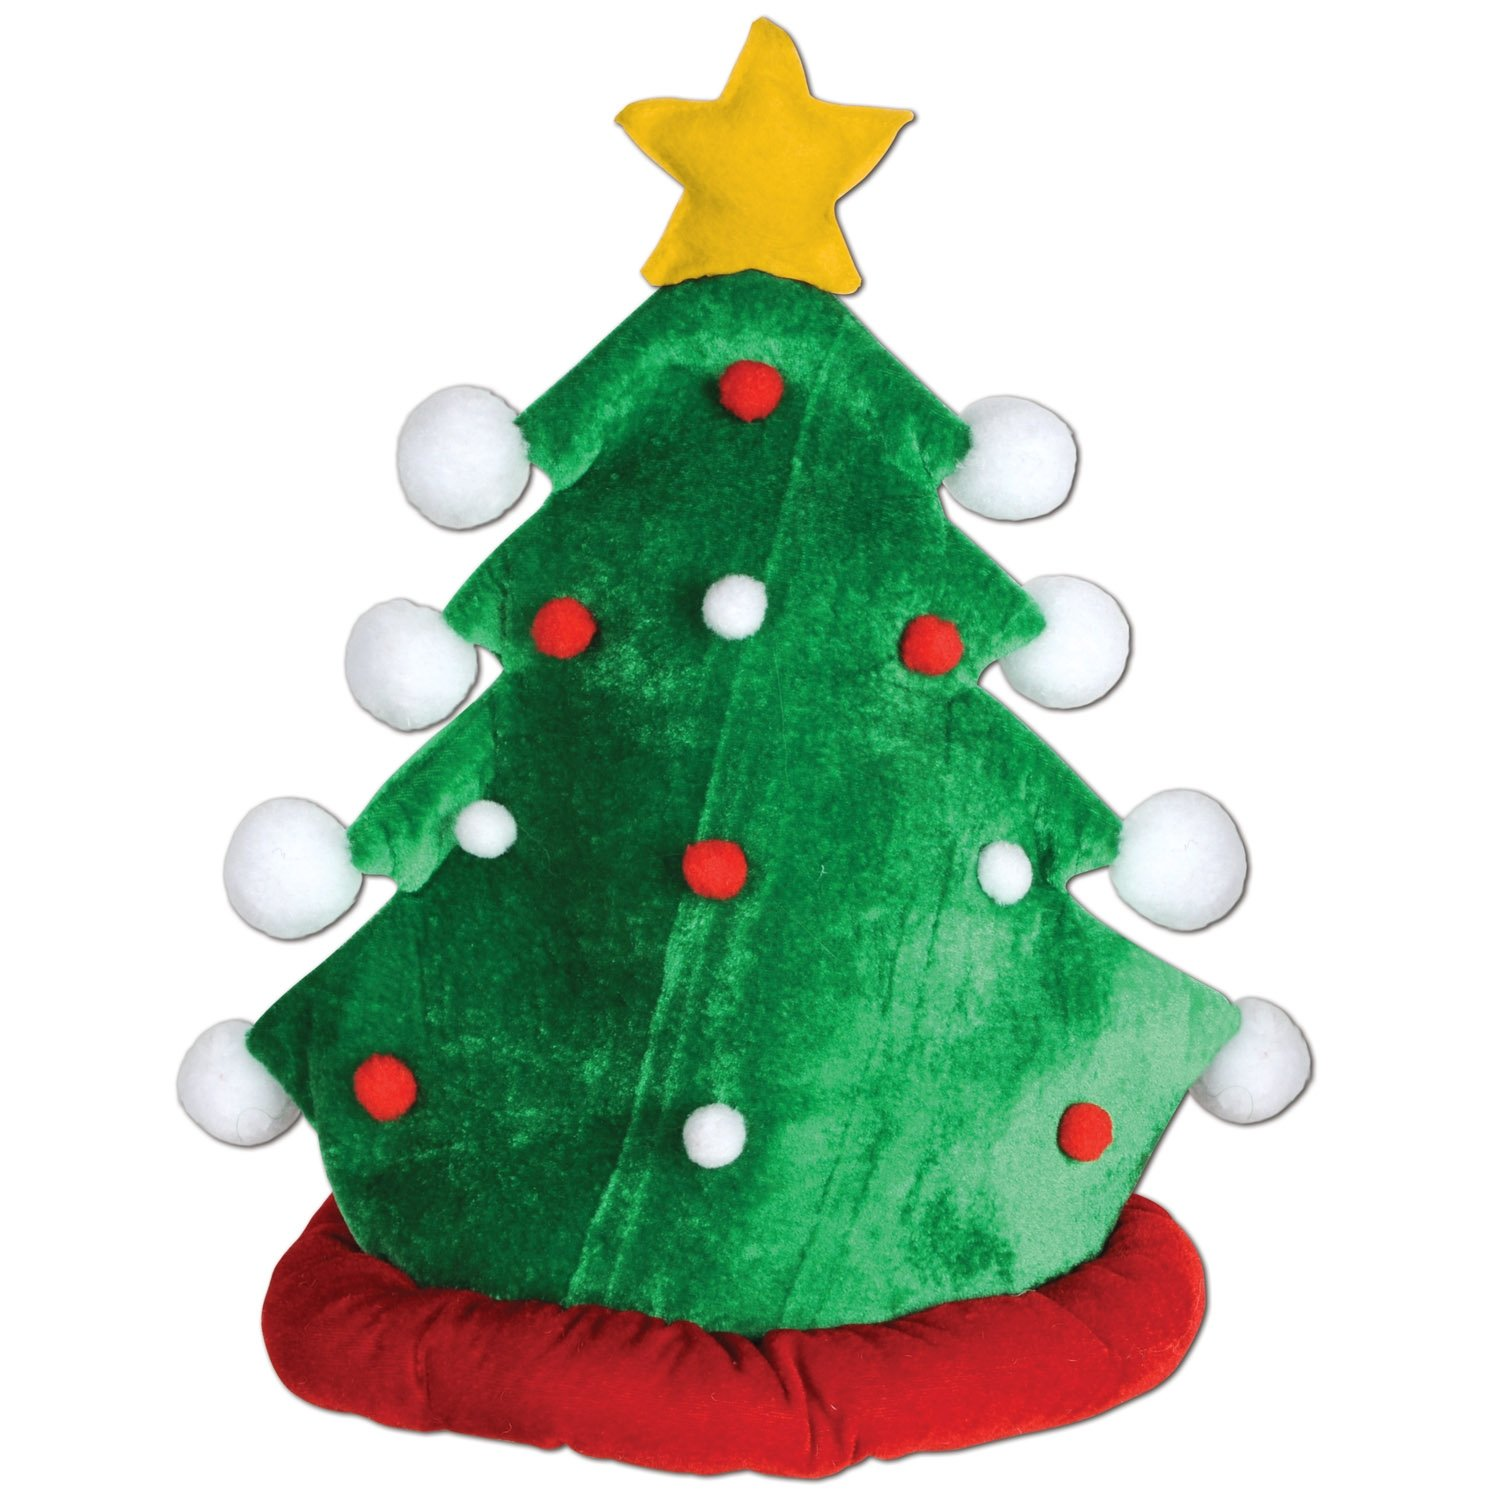 Beistle 1-Pack Plush Christmas Tree Hat The Beistle Company 20709